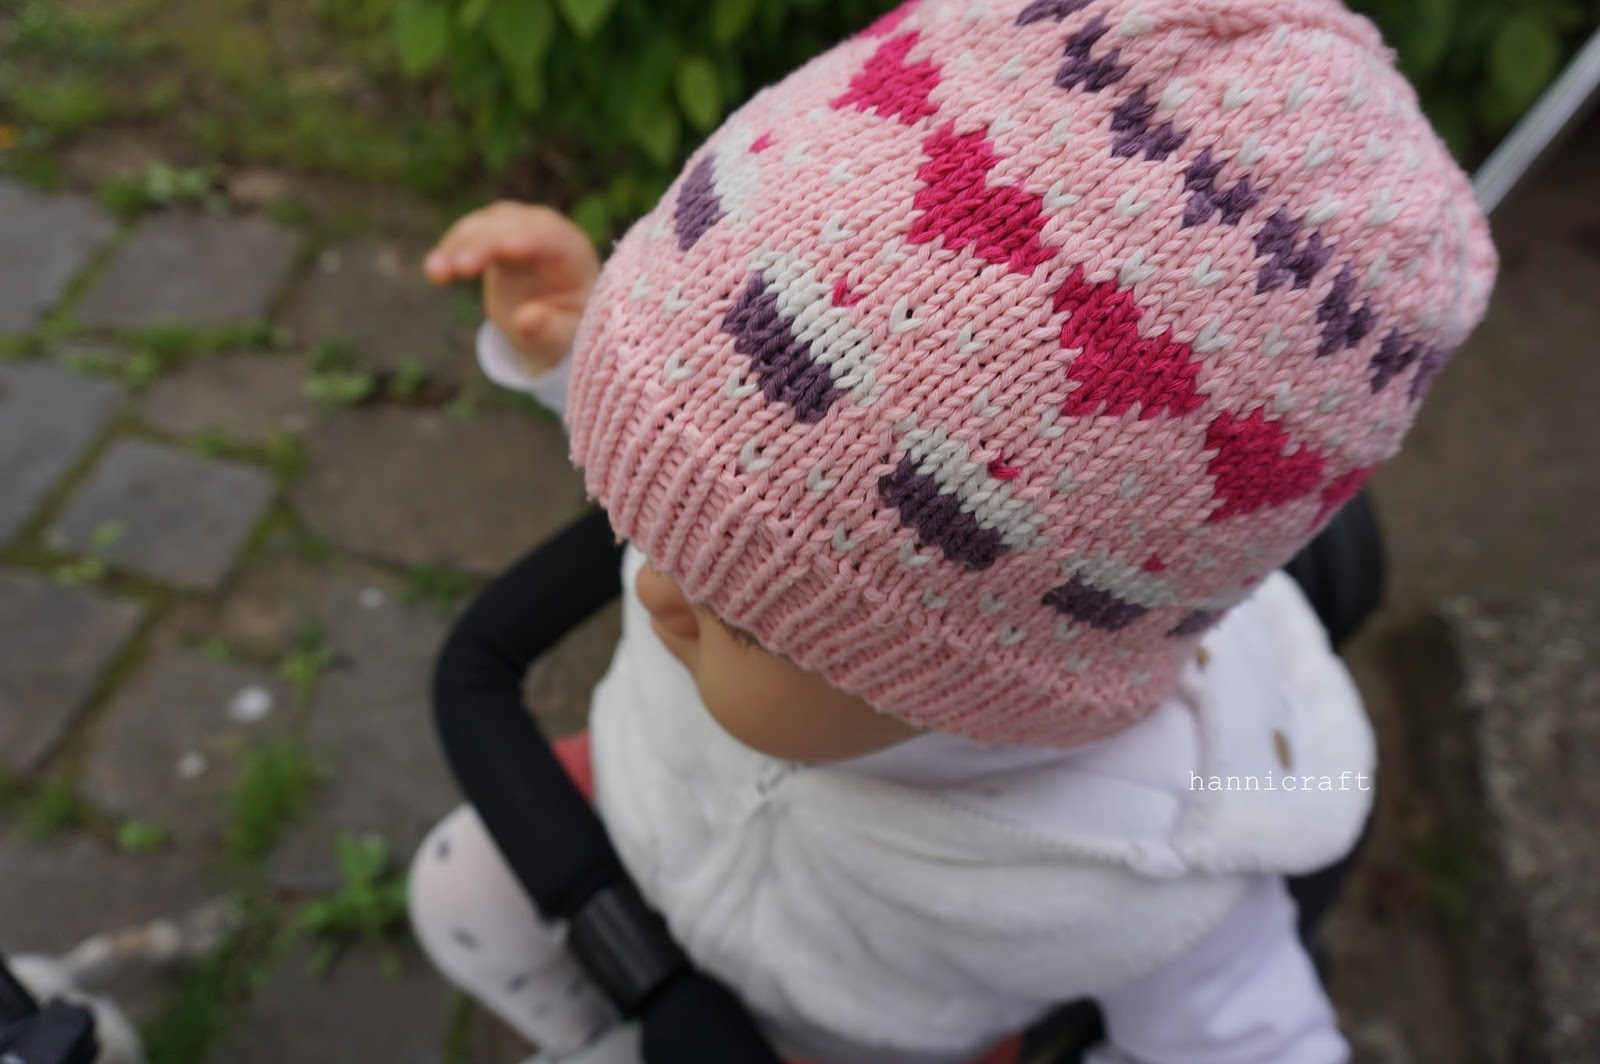 Hannicraft: Hearts and Cupcakes Girls Hat Pattern